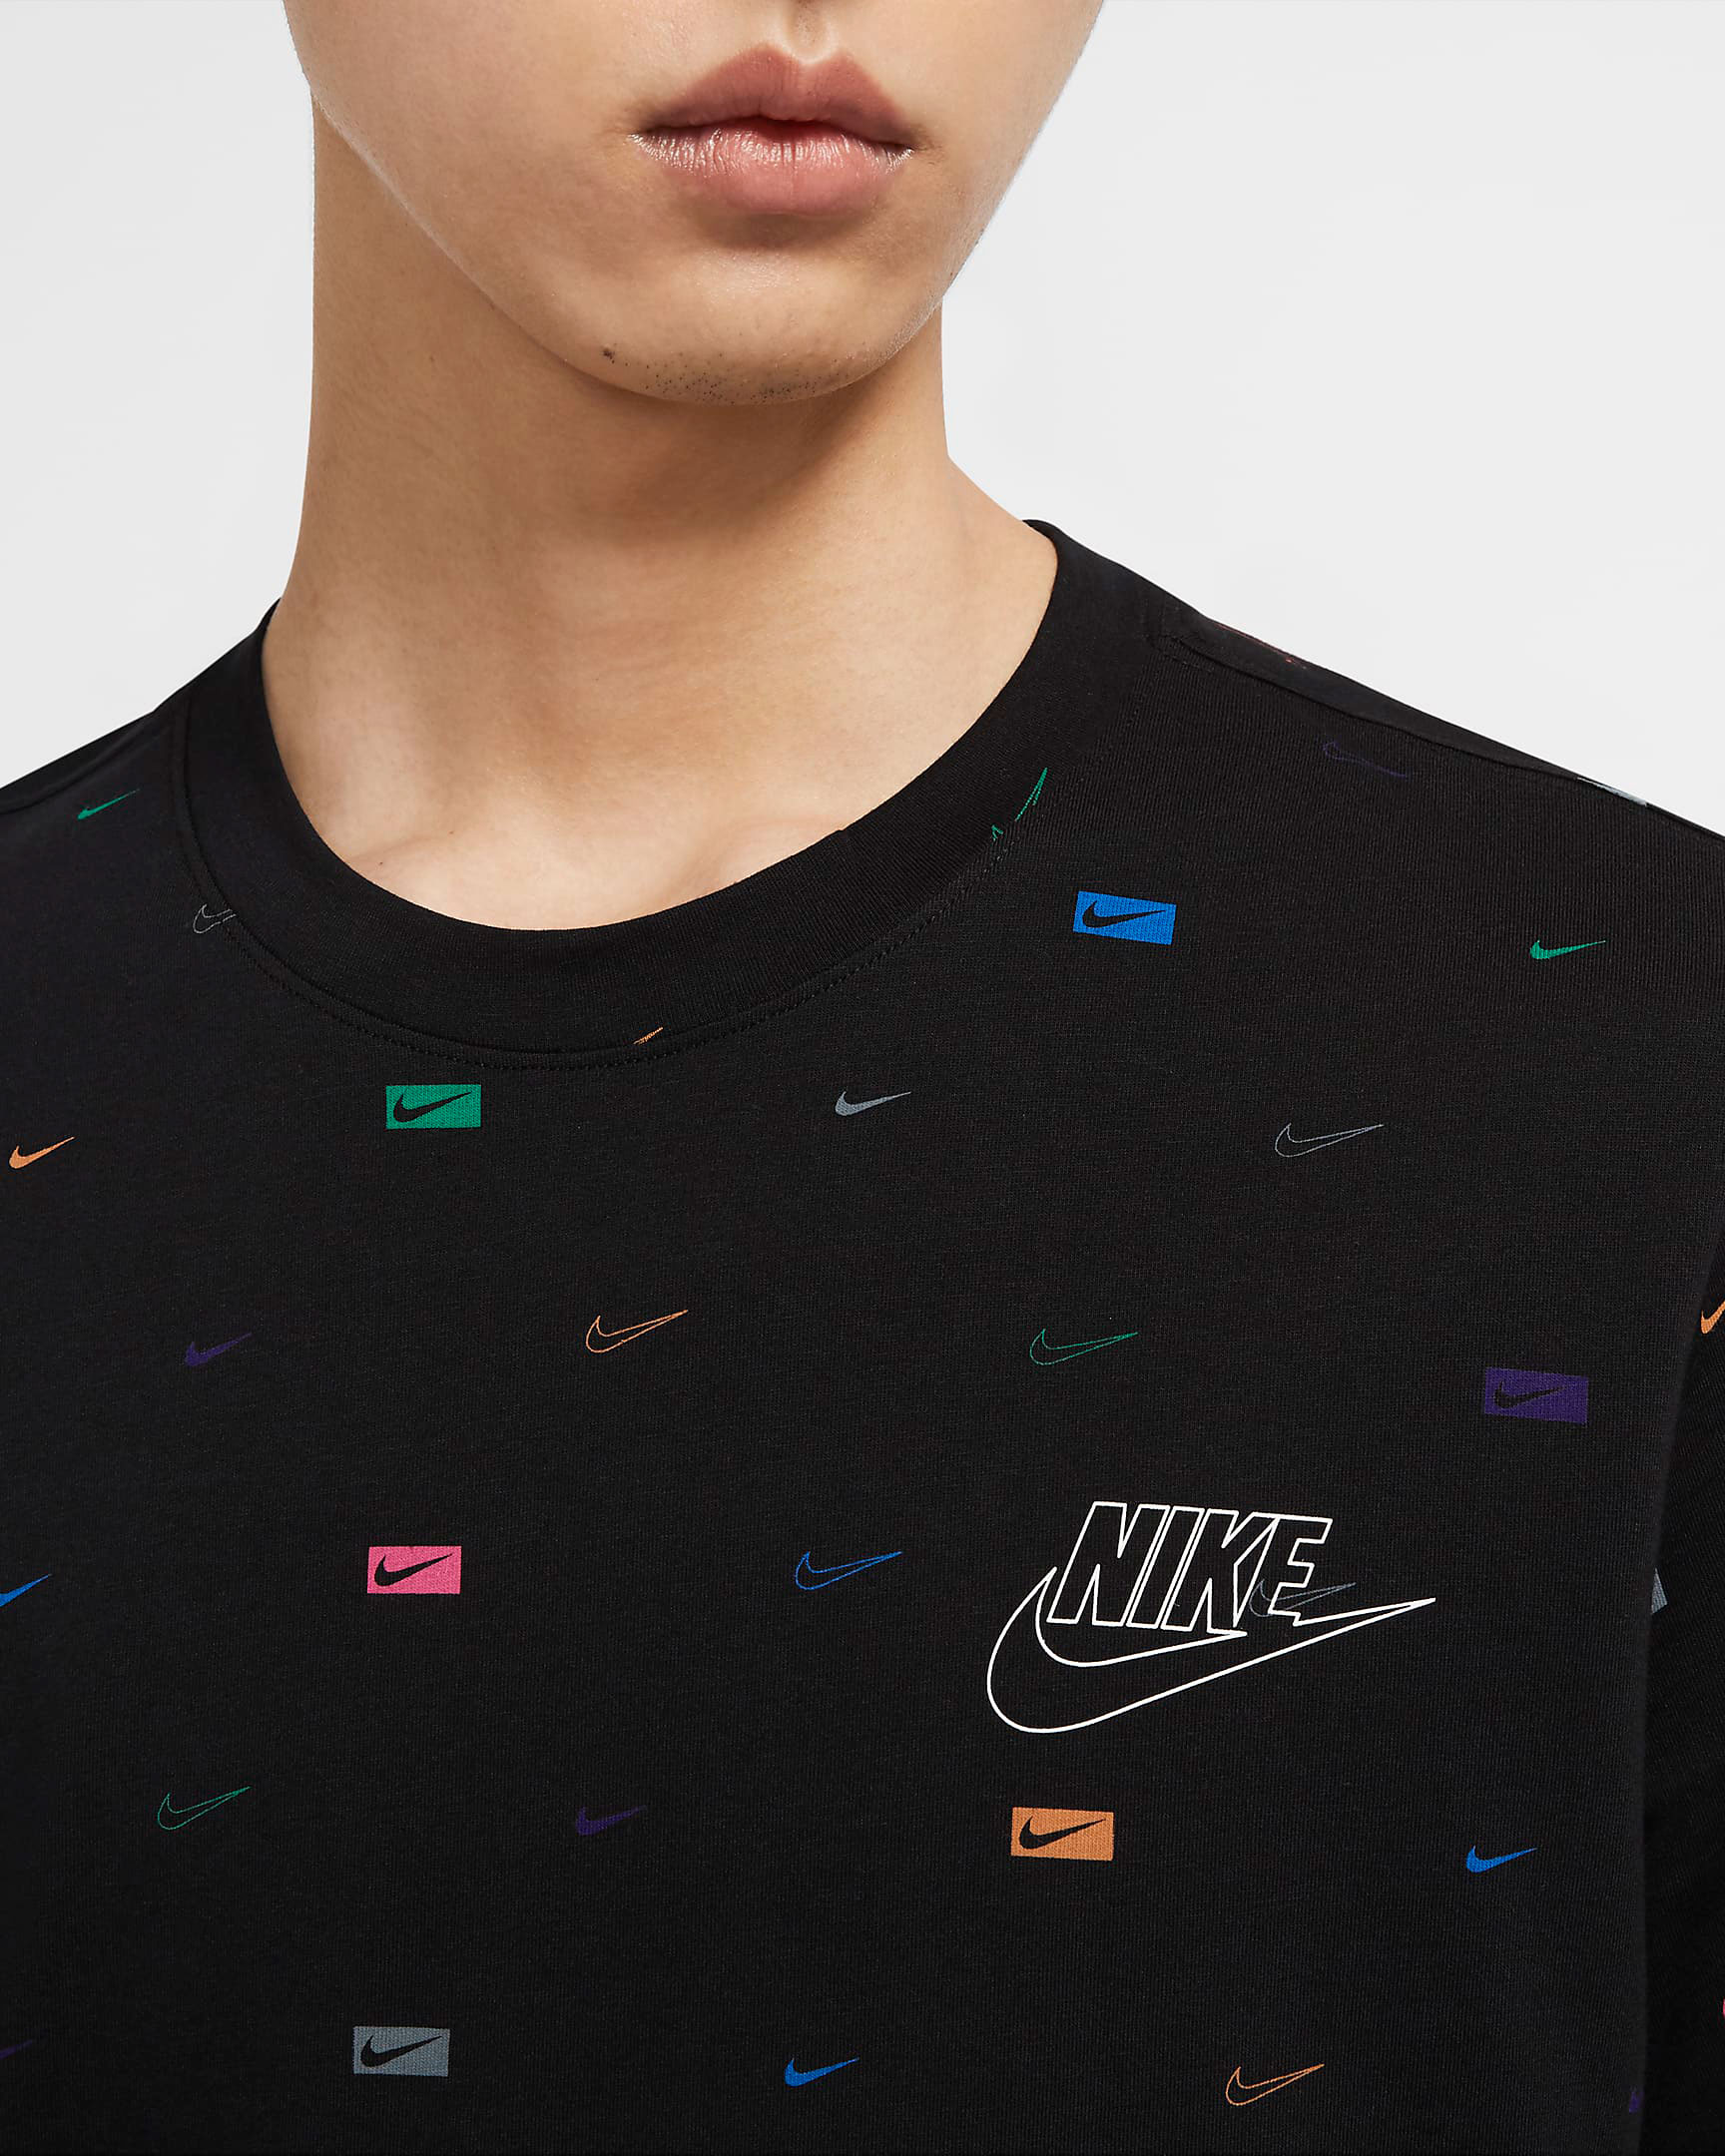 nike-air-vapormax-flyknit-2020-pure-platinum-shirt-match-black-1